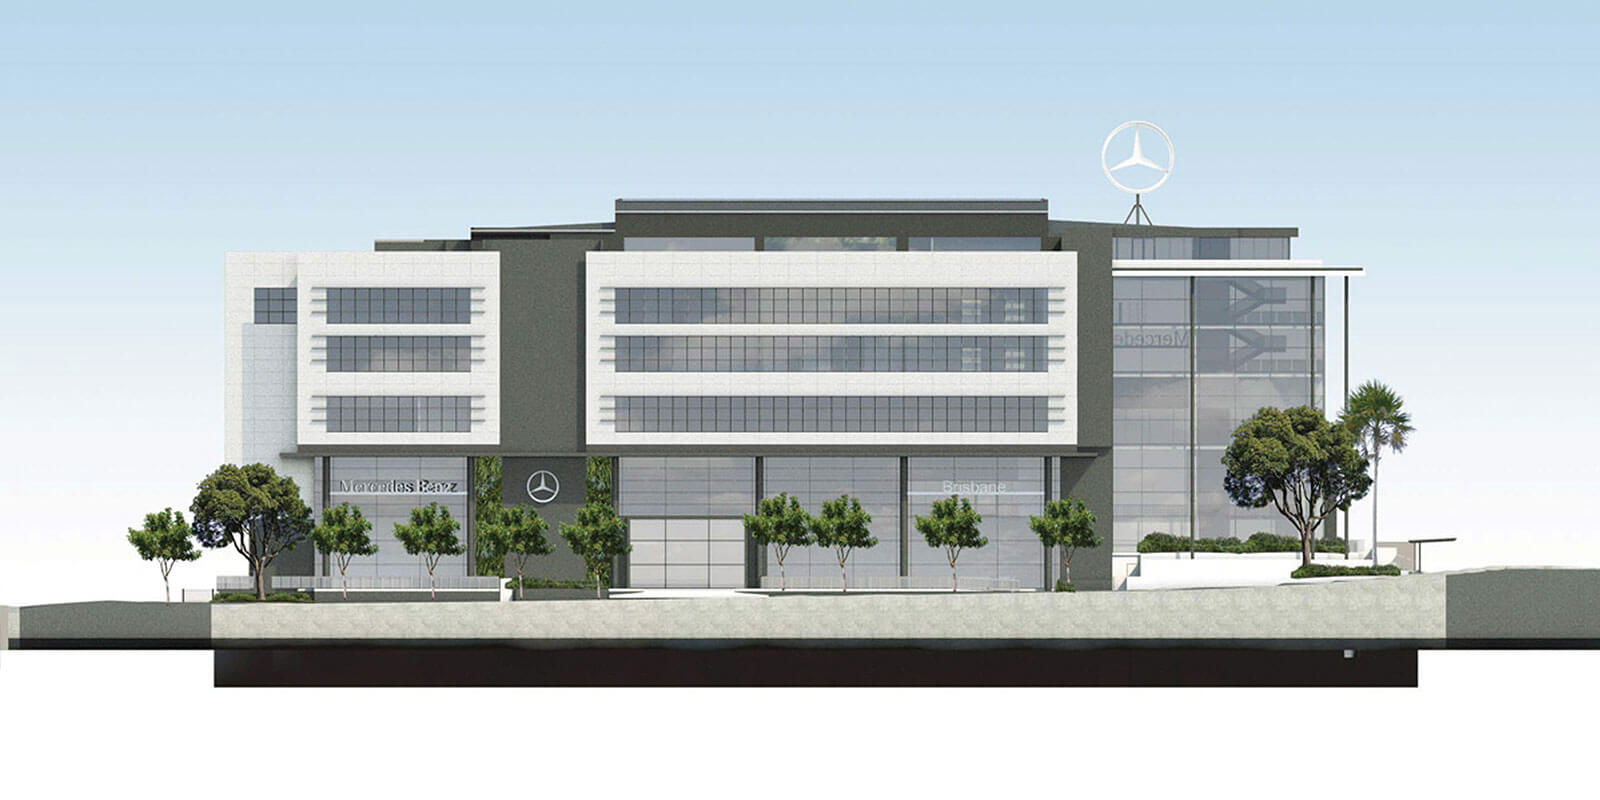 Mercedes to get five-storey store in Brisbane